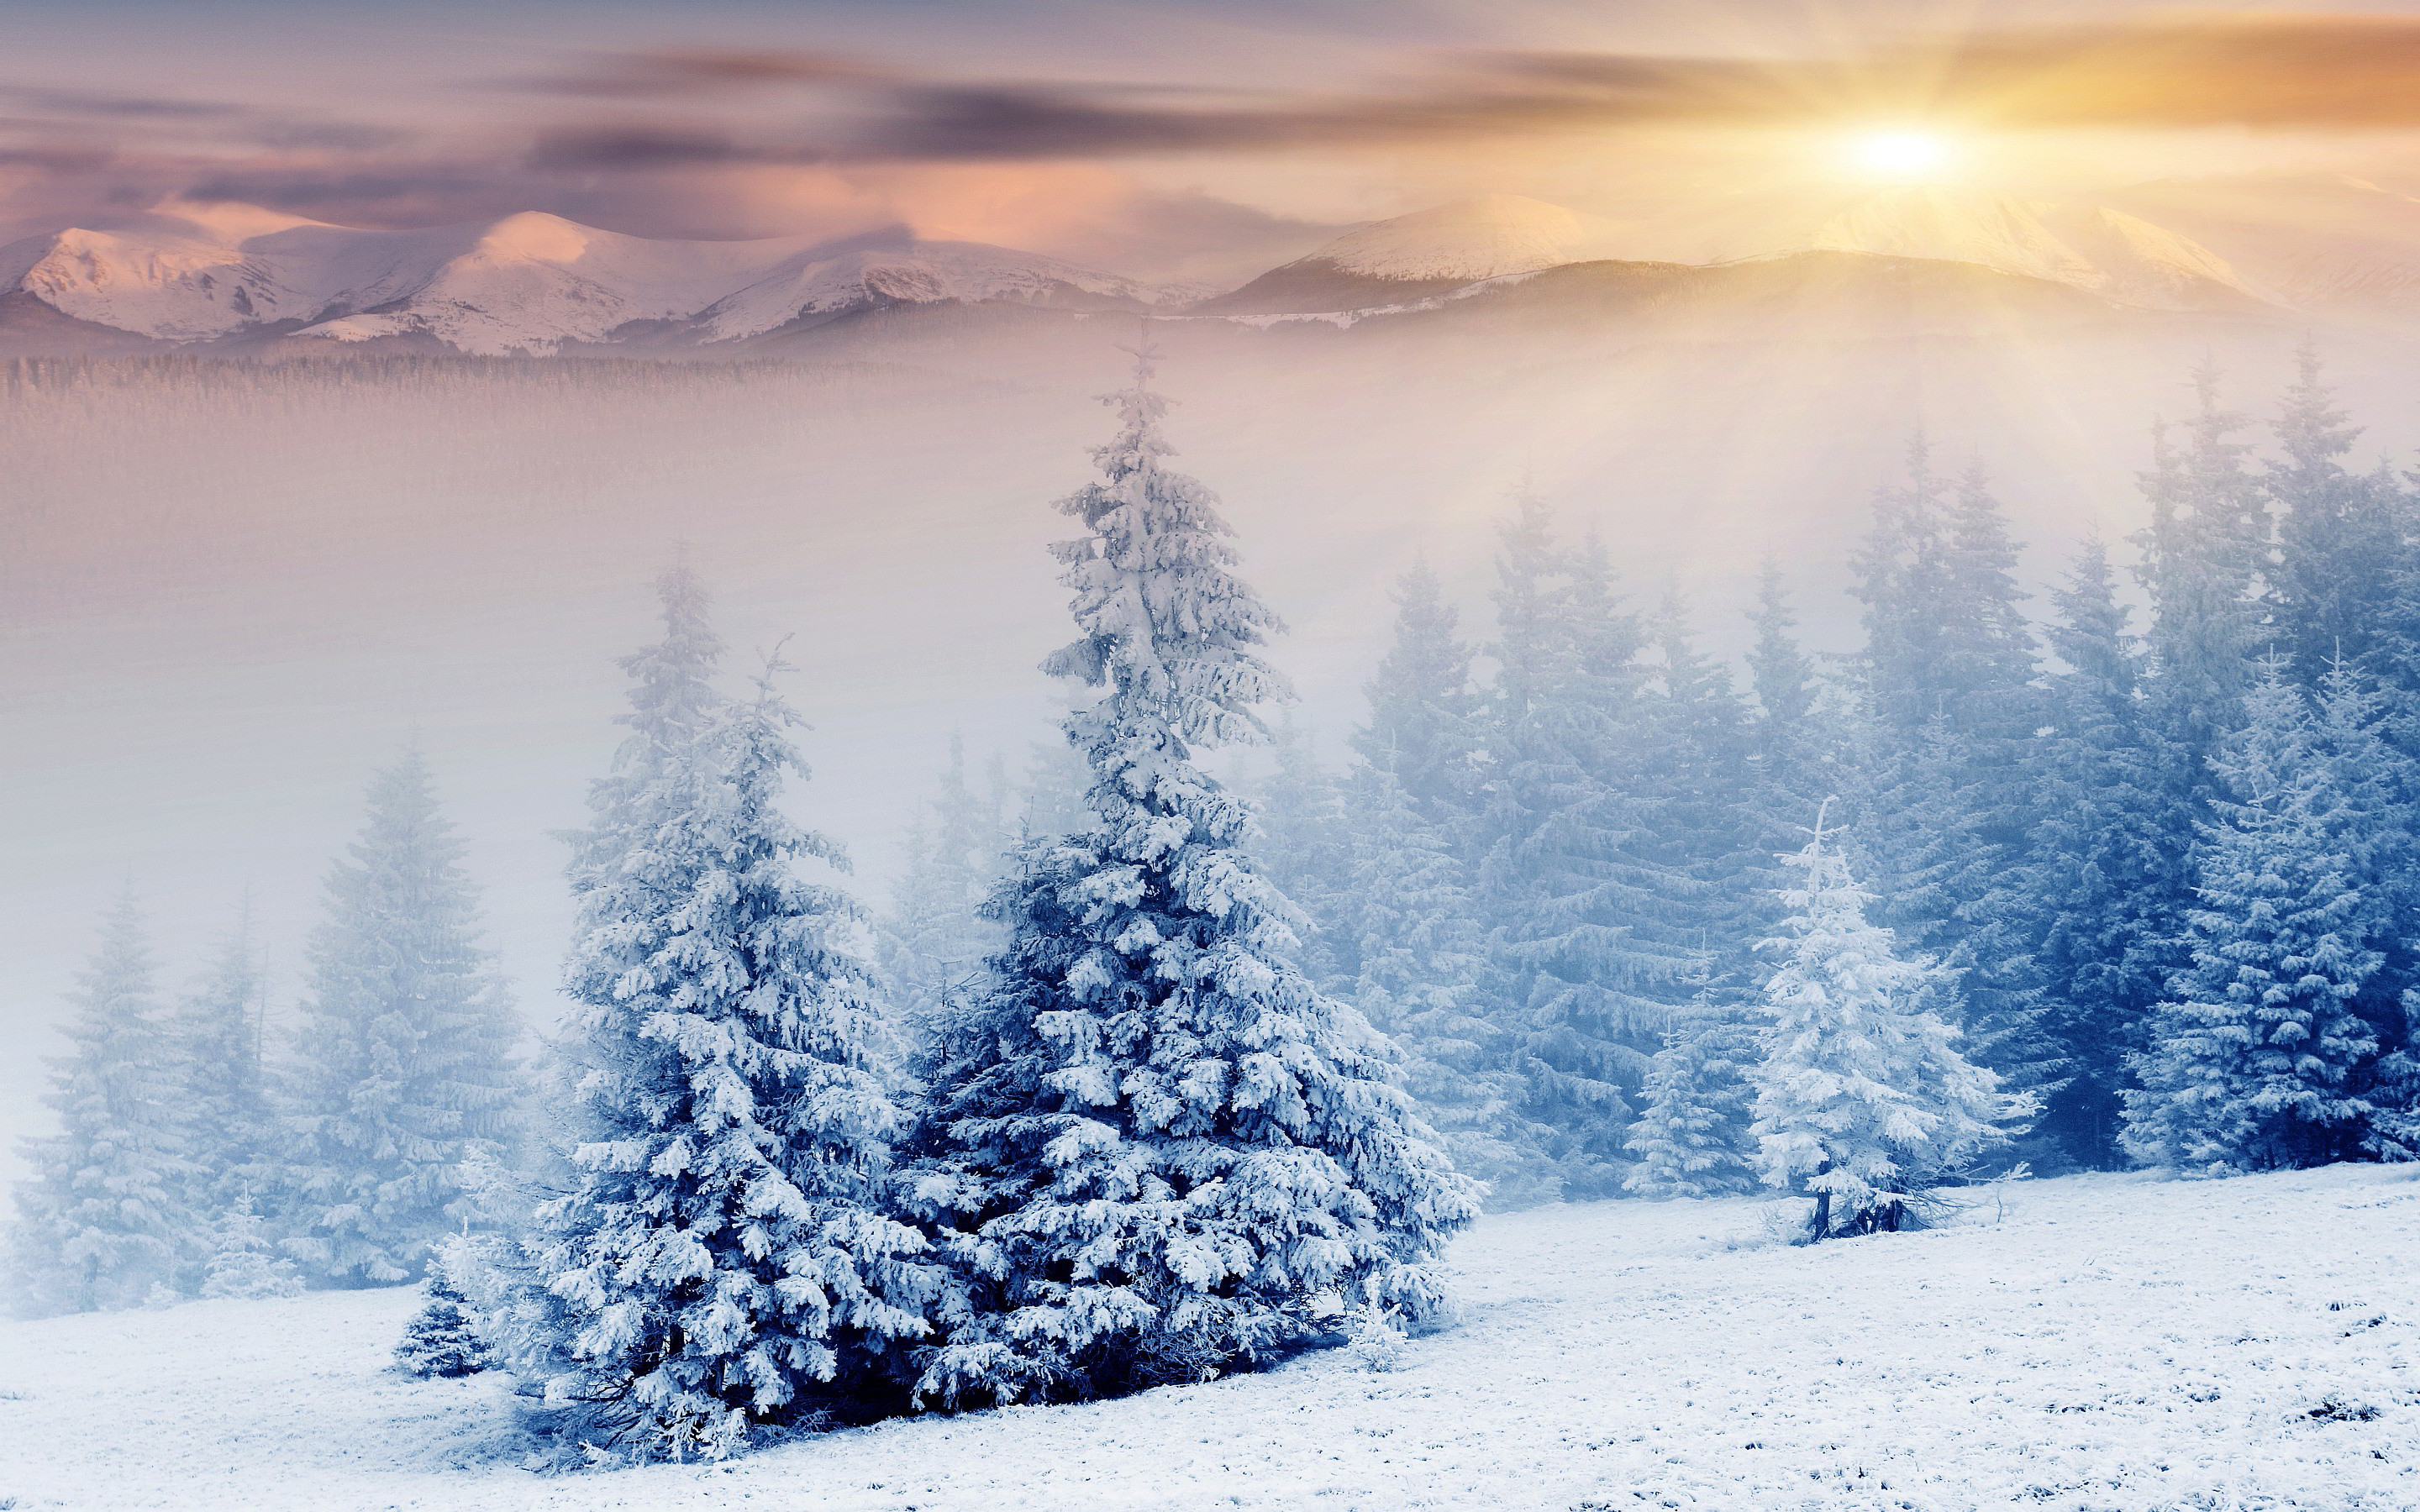 Beautiful Golden Road Forest Sunlight Winter Background Snow Wallpaper Illuminated Trees Through Snowy Surrounding Wallpapers